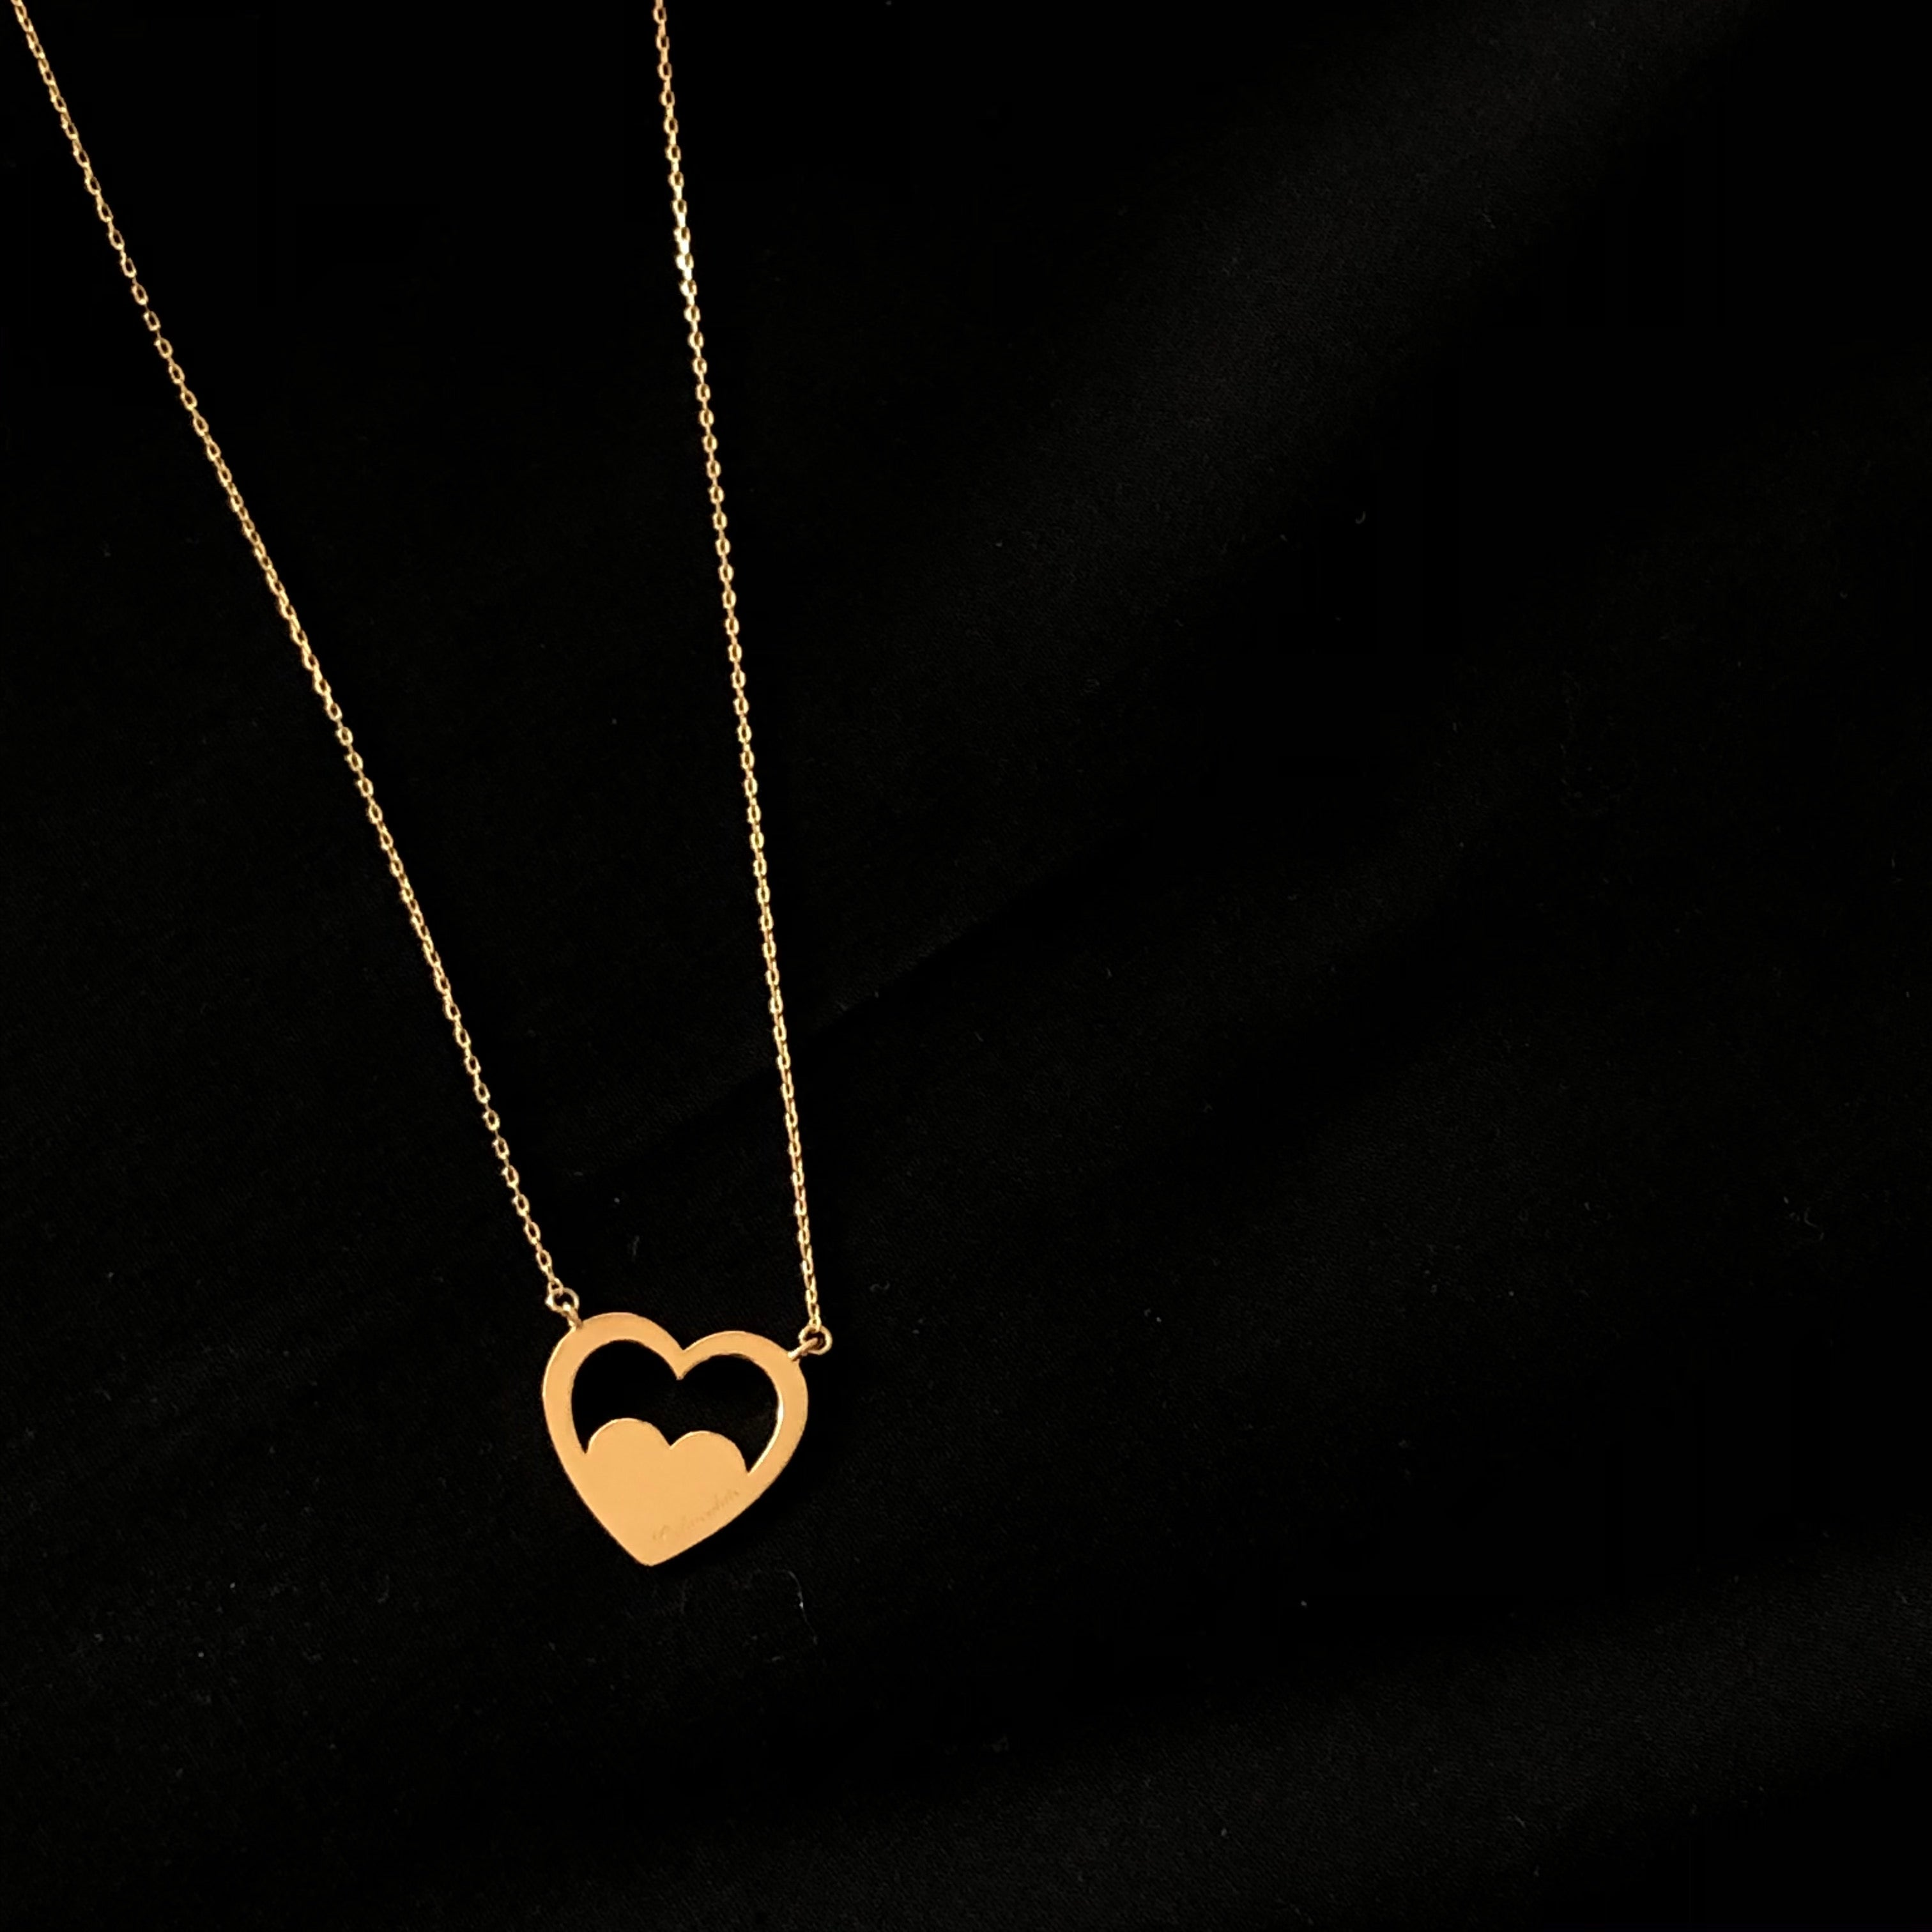 Heart plate necklace